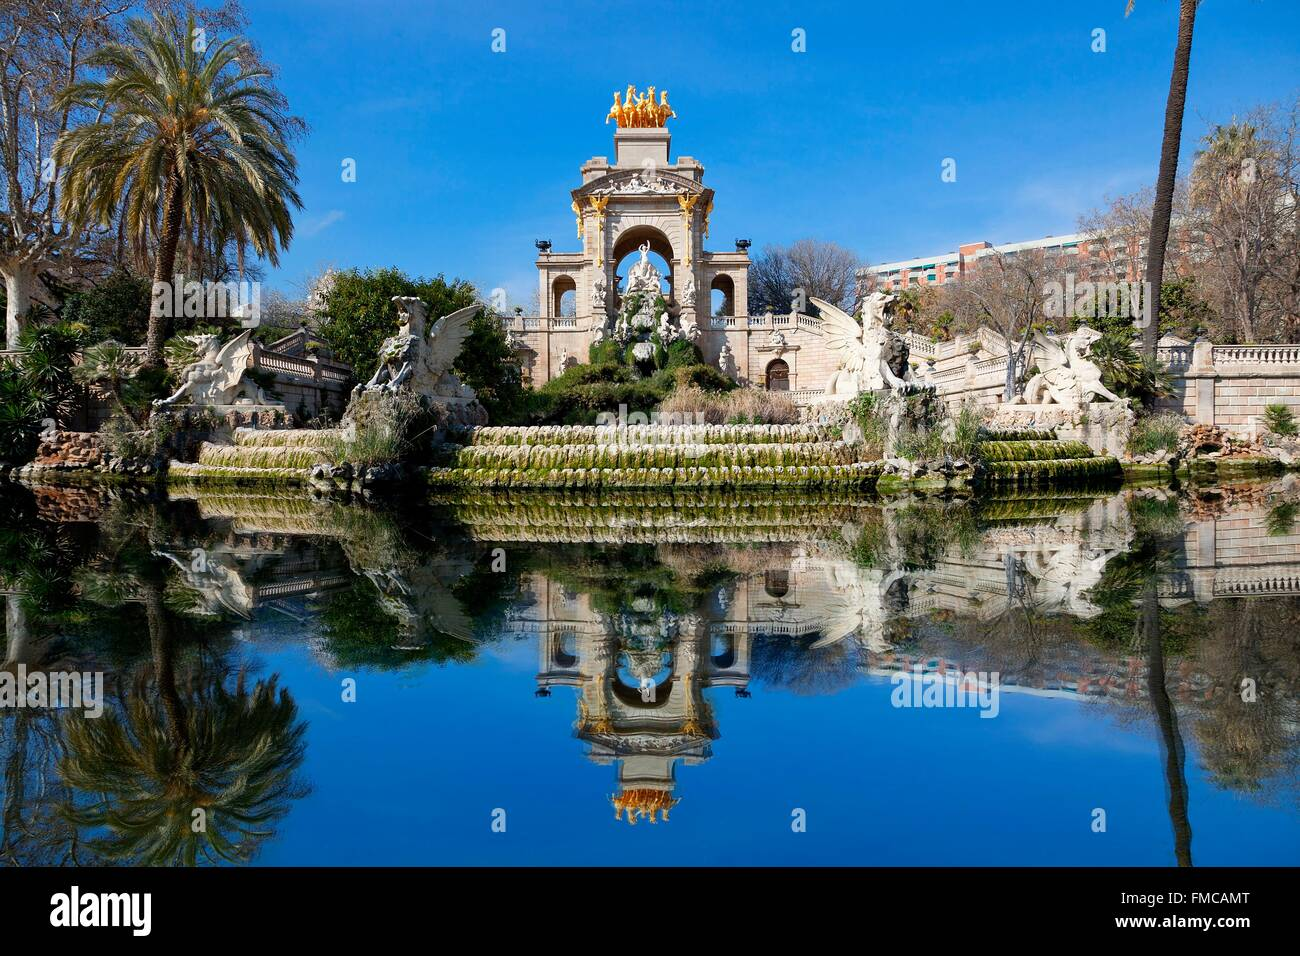 Spain, Catalonia, Barcelona, fountain of the Ciutadella Park Stock Photo